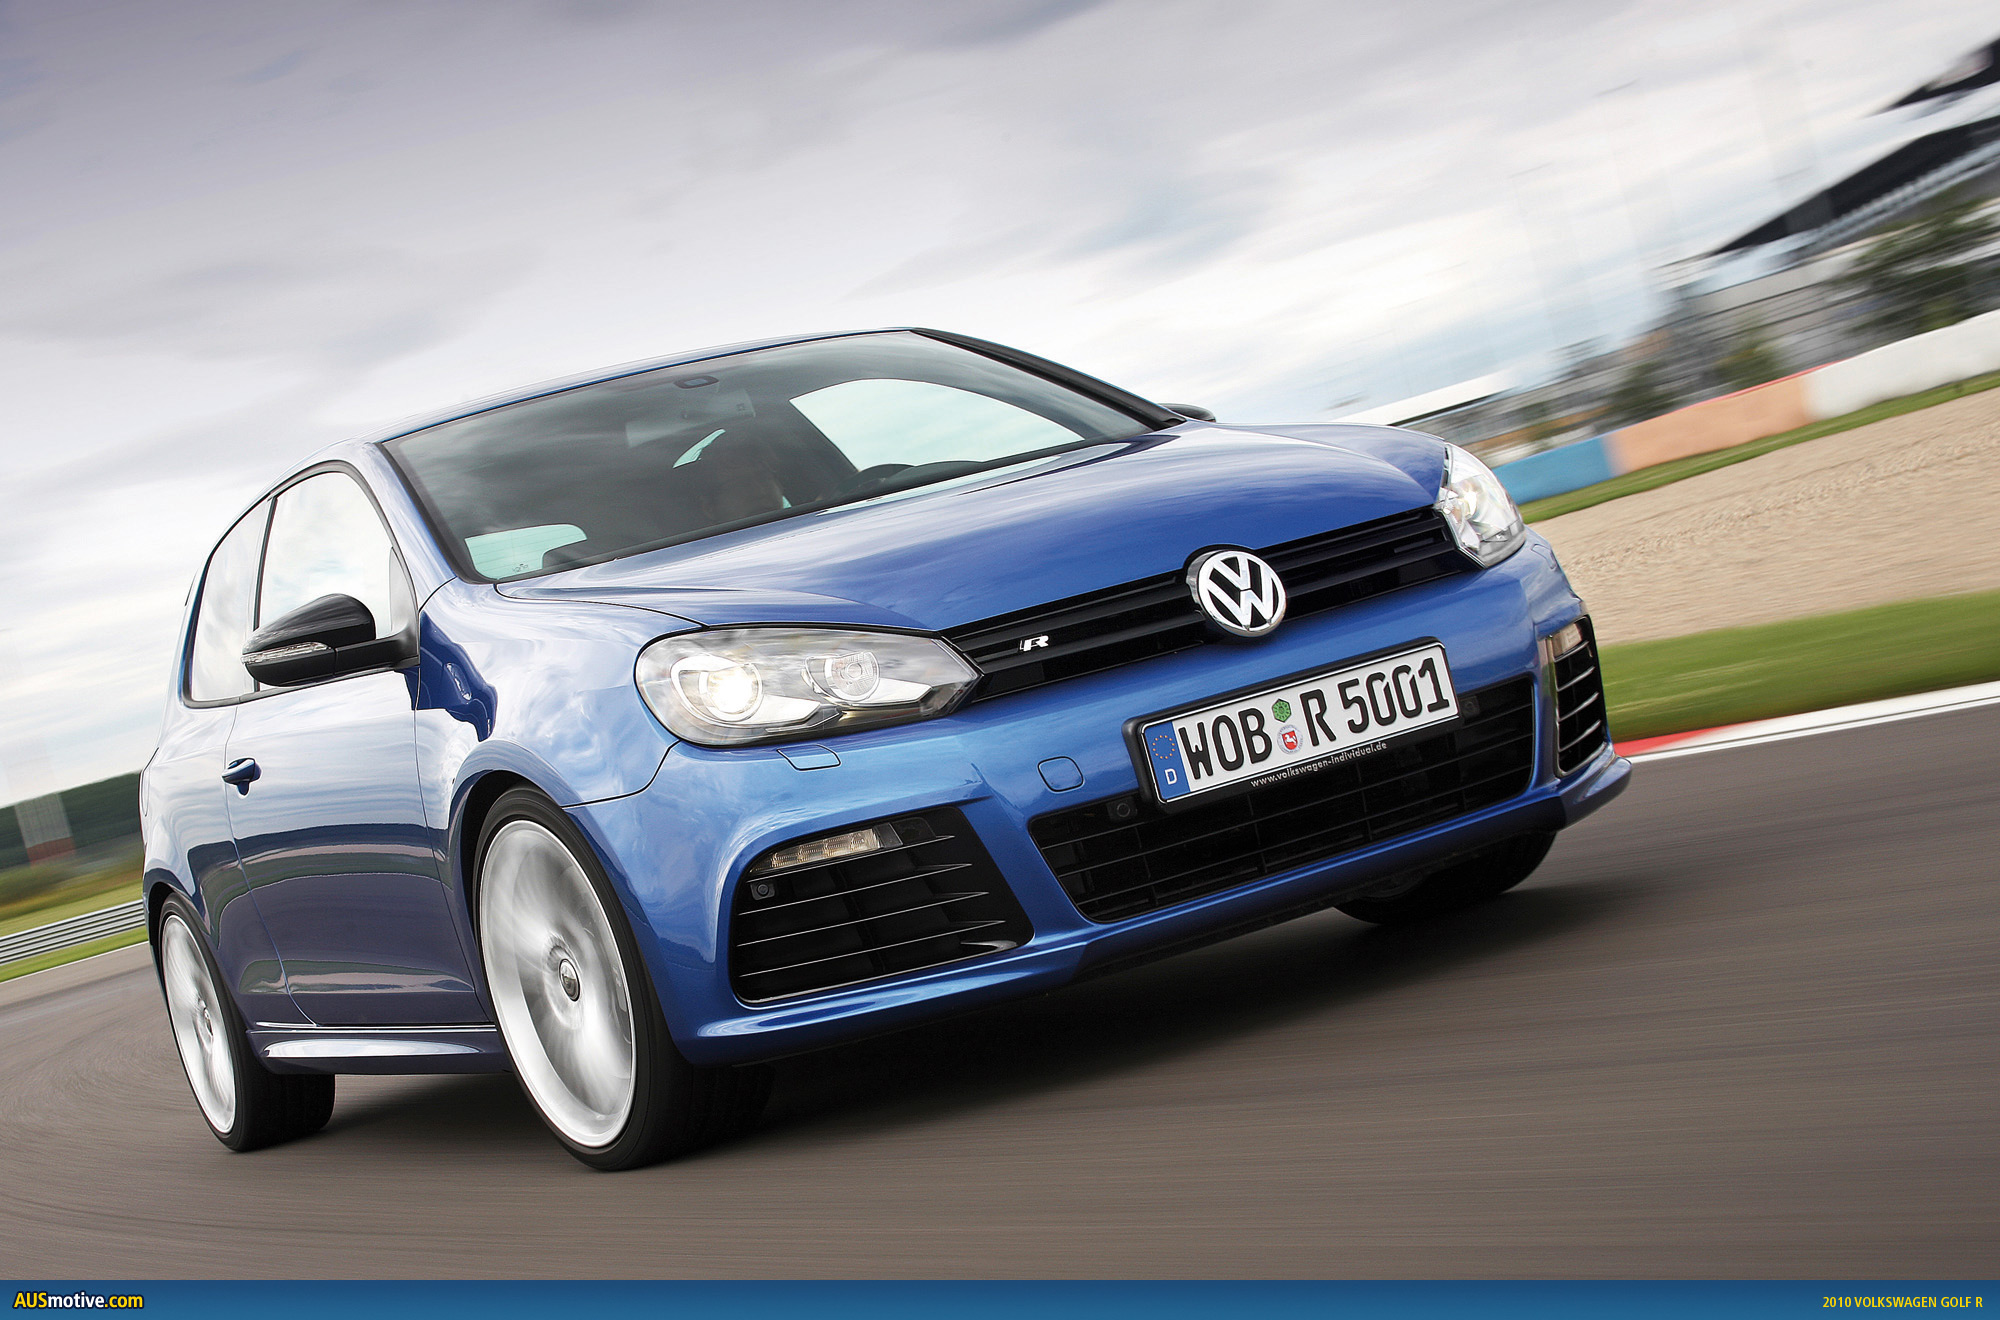 http://www.ausmotive.com/images/VW-Golf-R-01.jpg